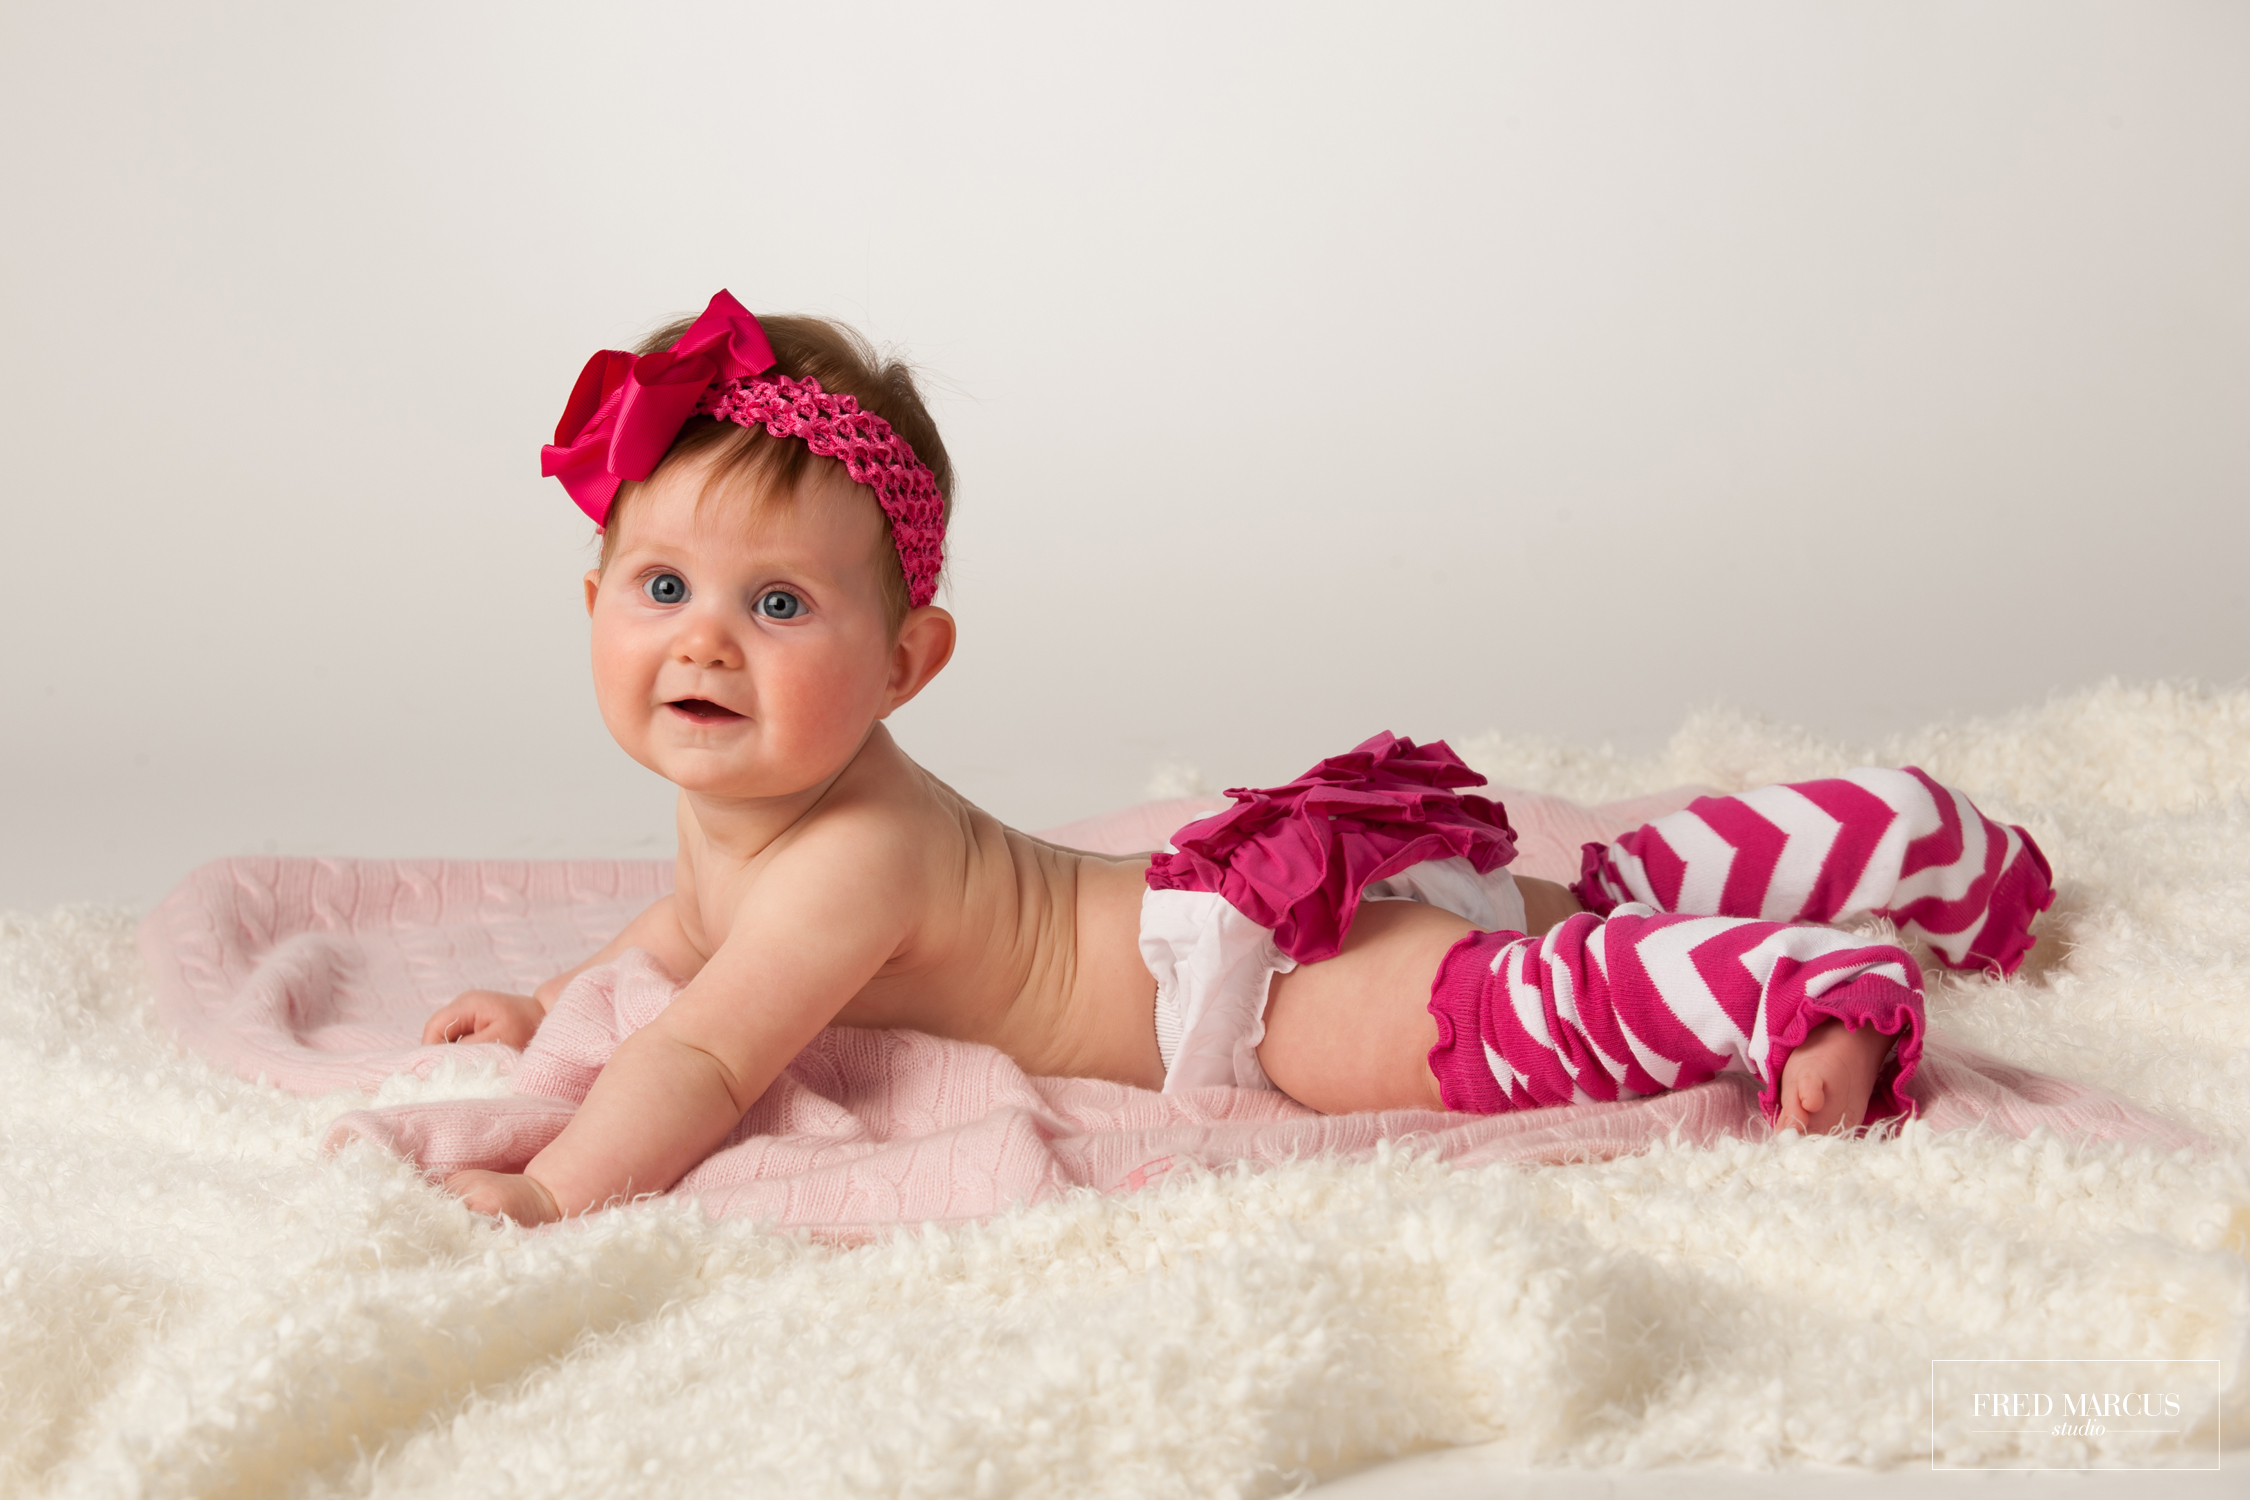 Photo of the Week: Baby Bliss